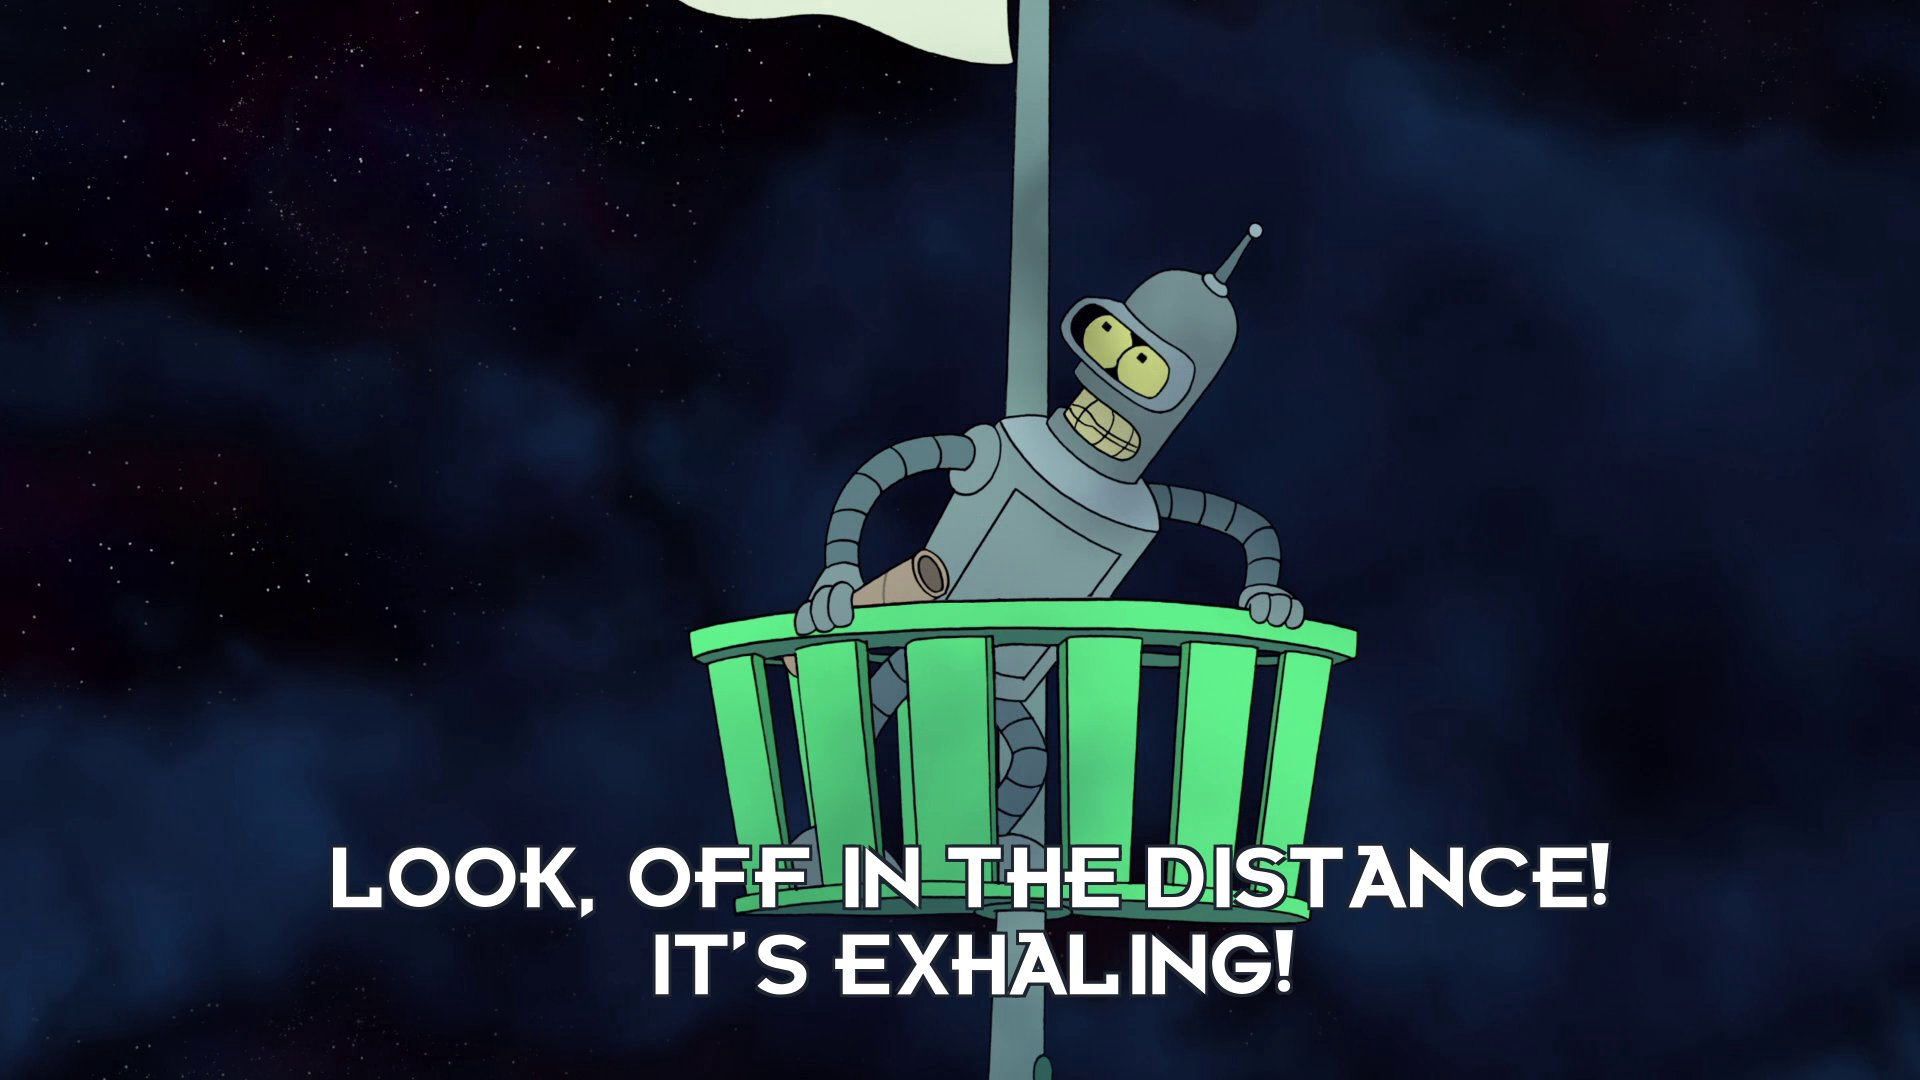 Bender Bending Rodriguez: Look, off in the distance! It's exhaling!